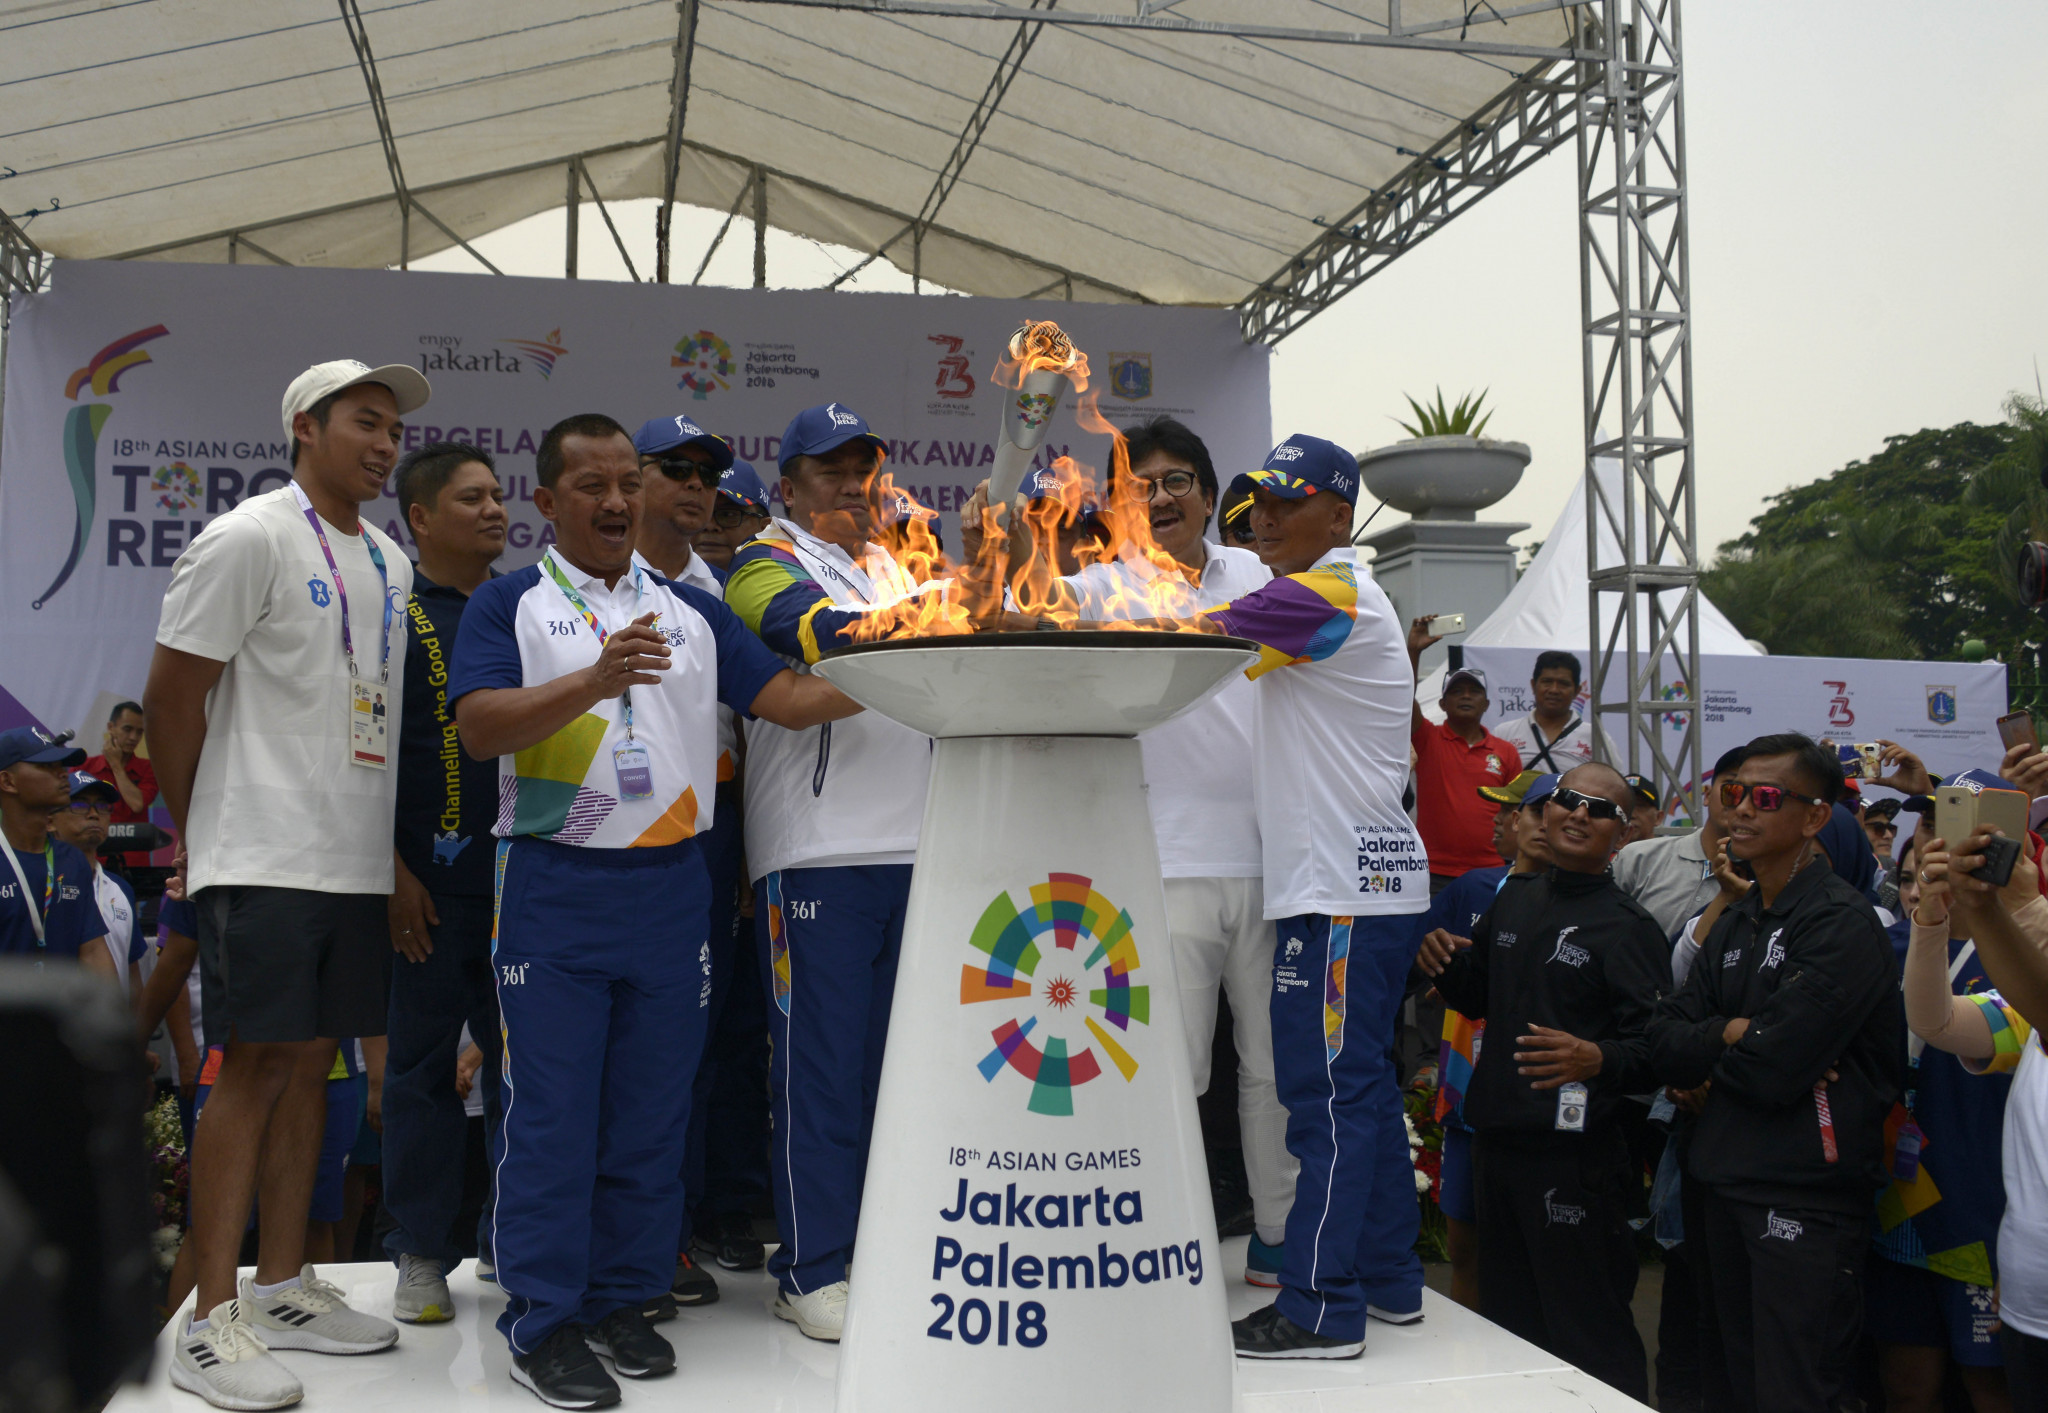 The Asian Games Torch Relay has arrived in Jakarta ©Getty Images